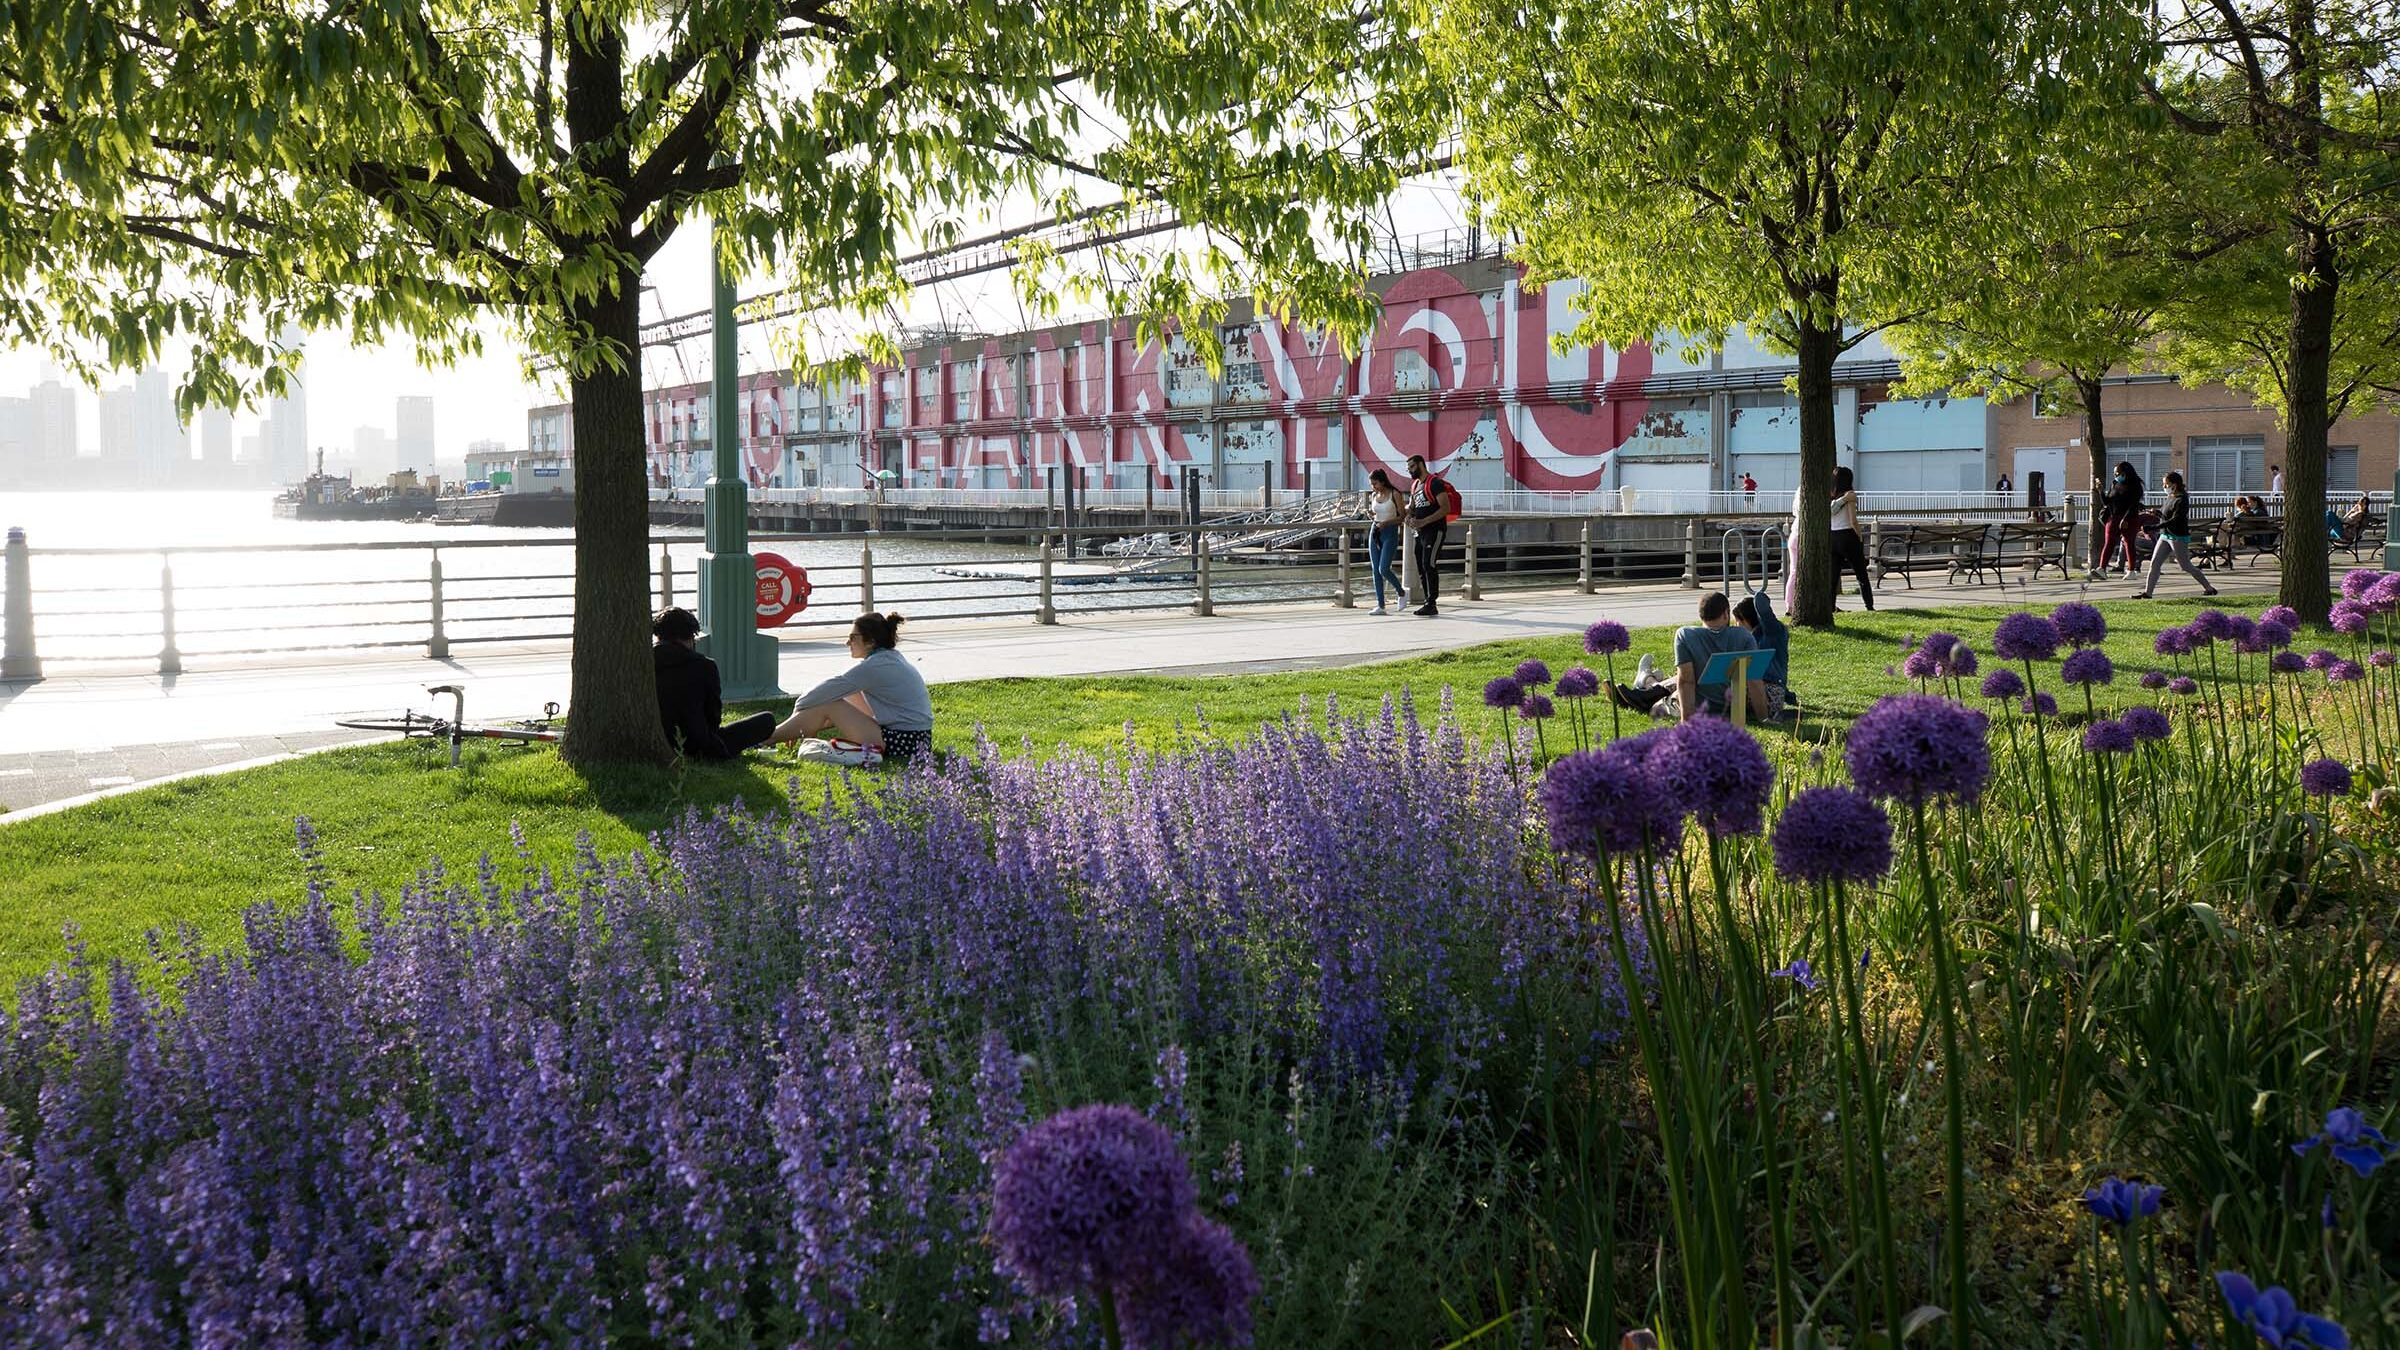 Park visitors enjoy lounging on the lawns in Tribeca in Hudson River Park